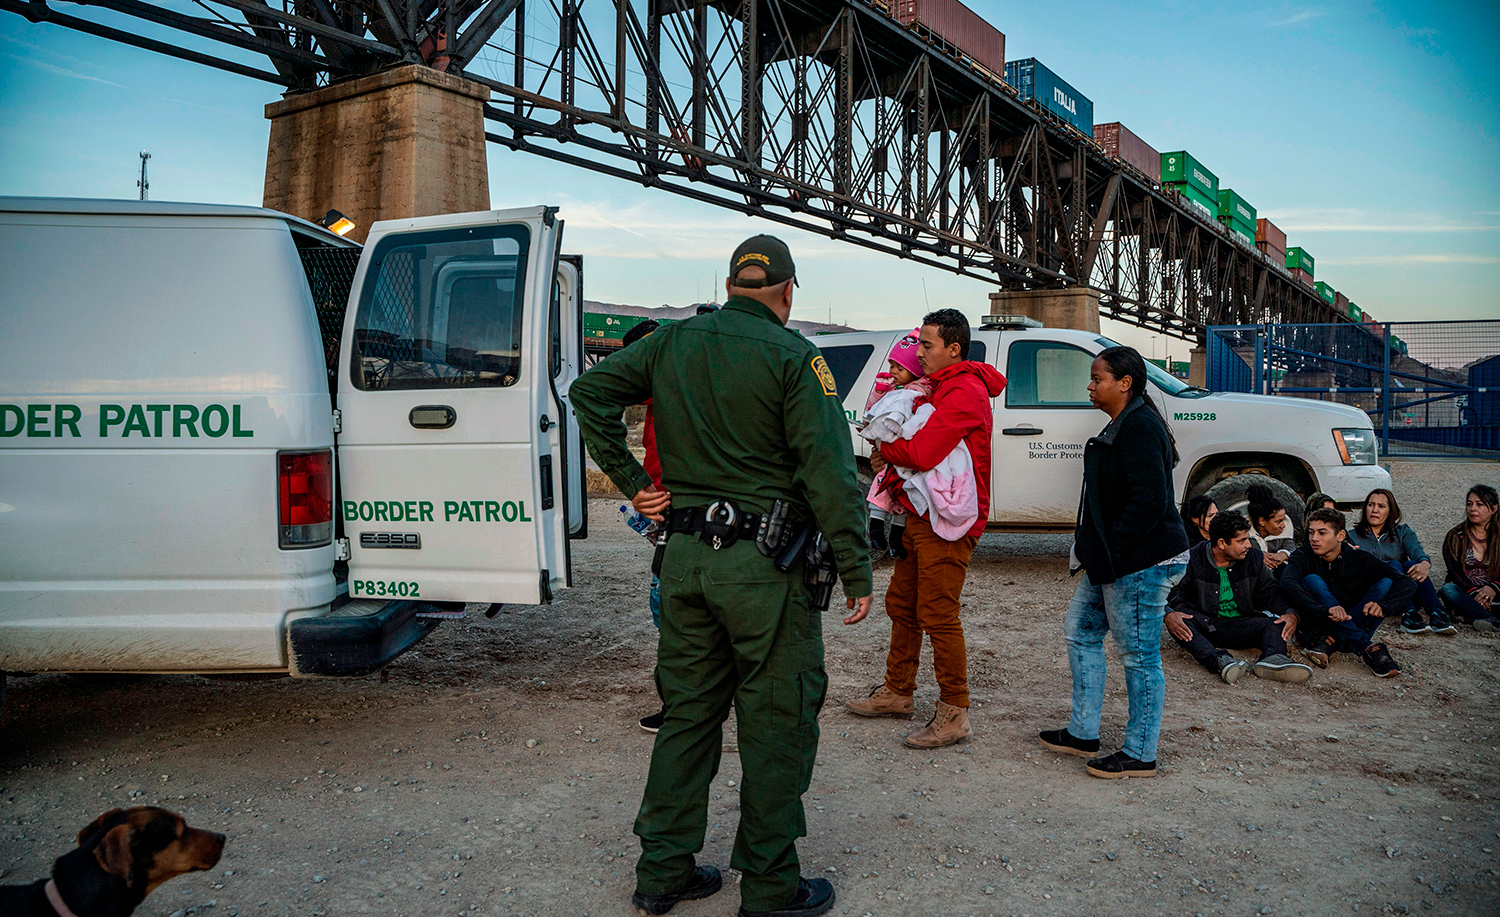 A group of Brazilian migrants in Sunland Park, New Mexico on March 20, 2019. PAUL RATJE/AFP/Getty Images.